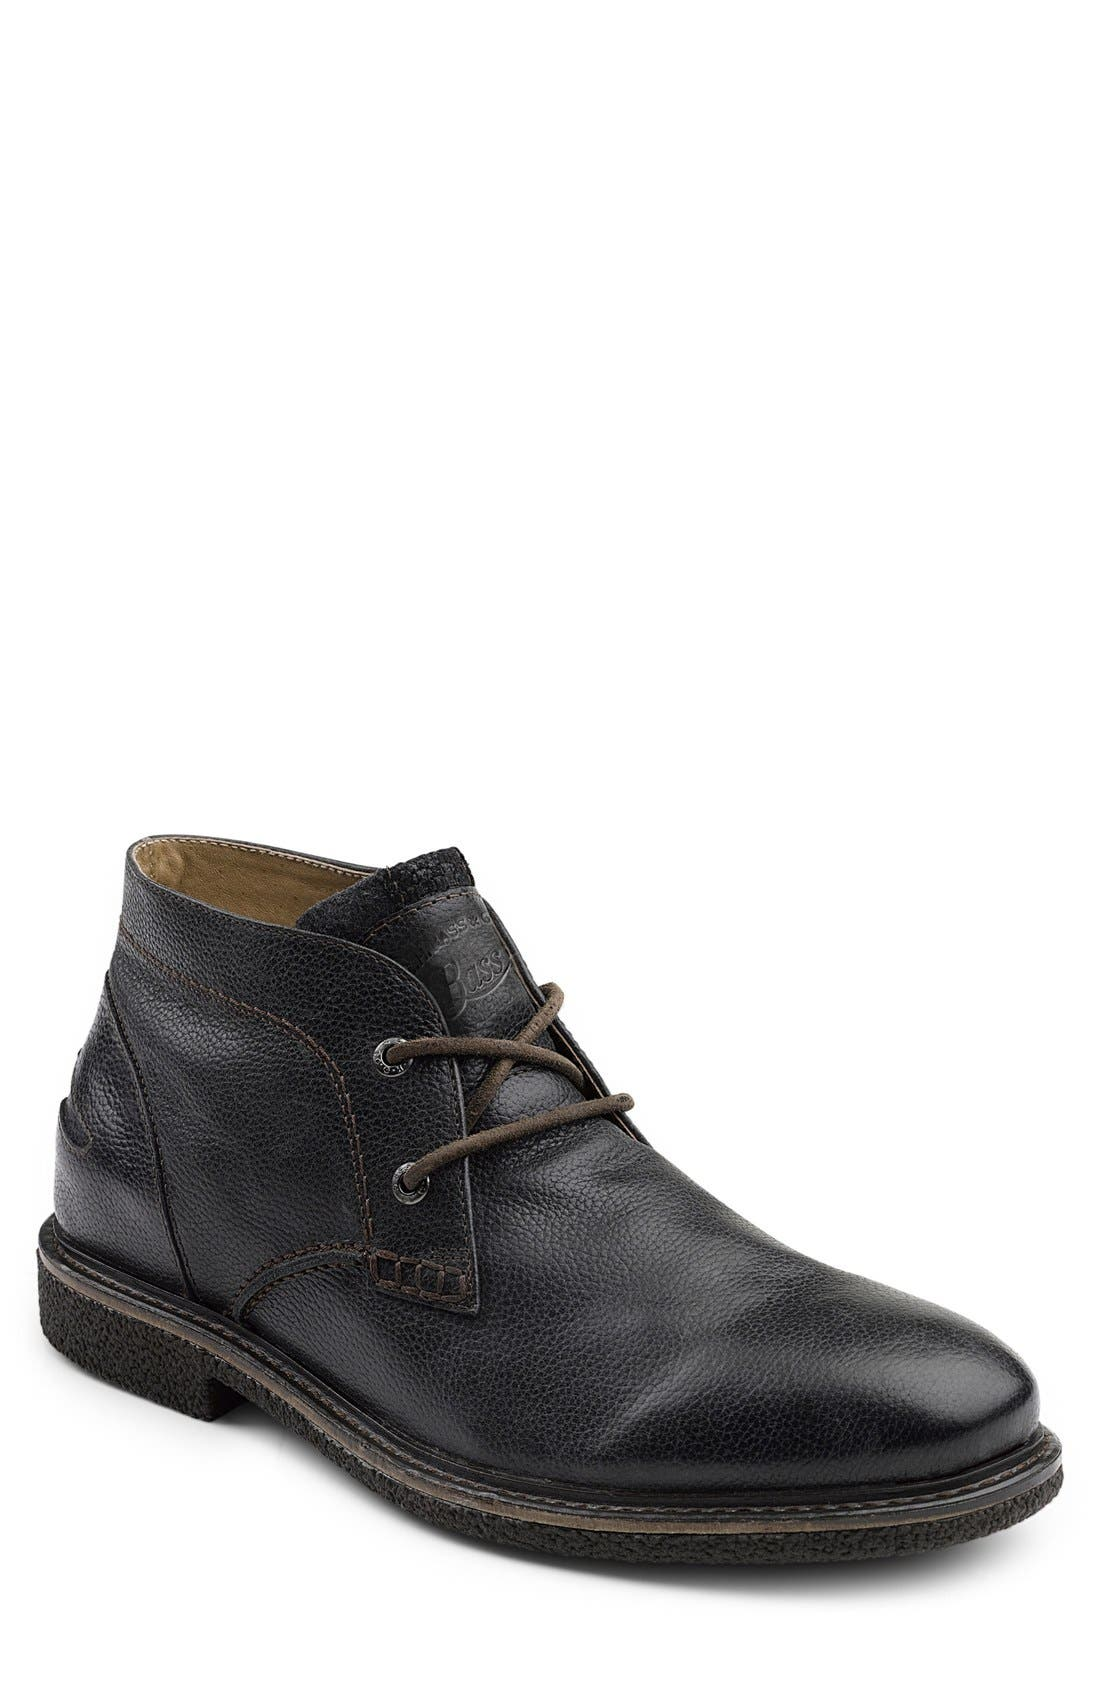 'Bennett' Chukka Boot,                         Main,                         color, BLACK